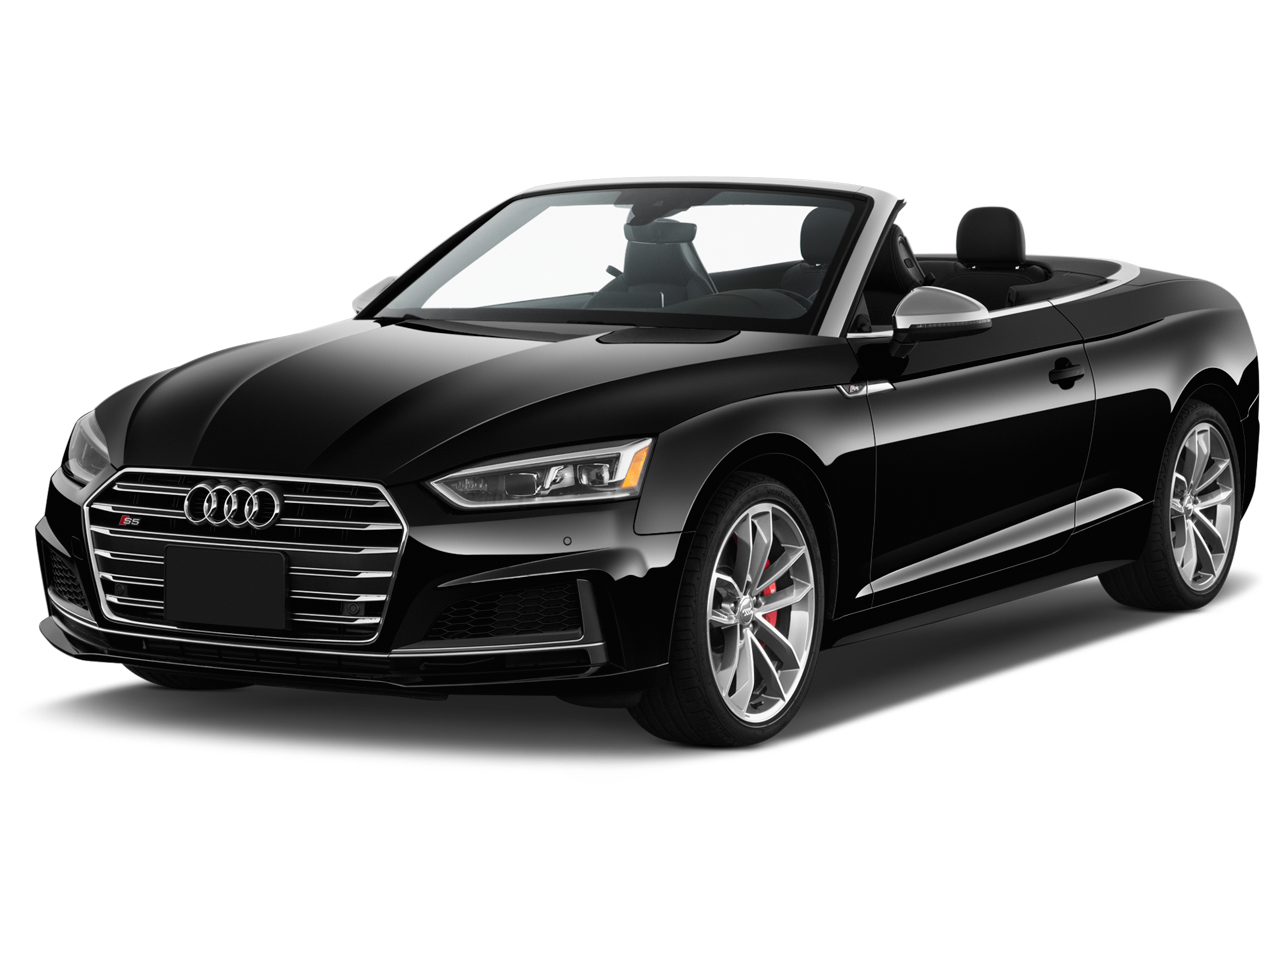 2019 Audi S5 Cabriolet Review, Ratings, Specs, Prices, and ...